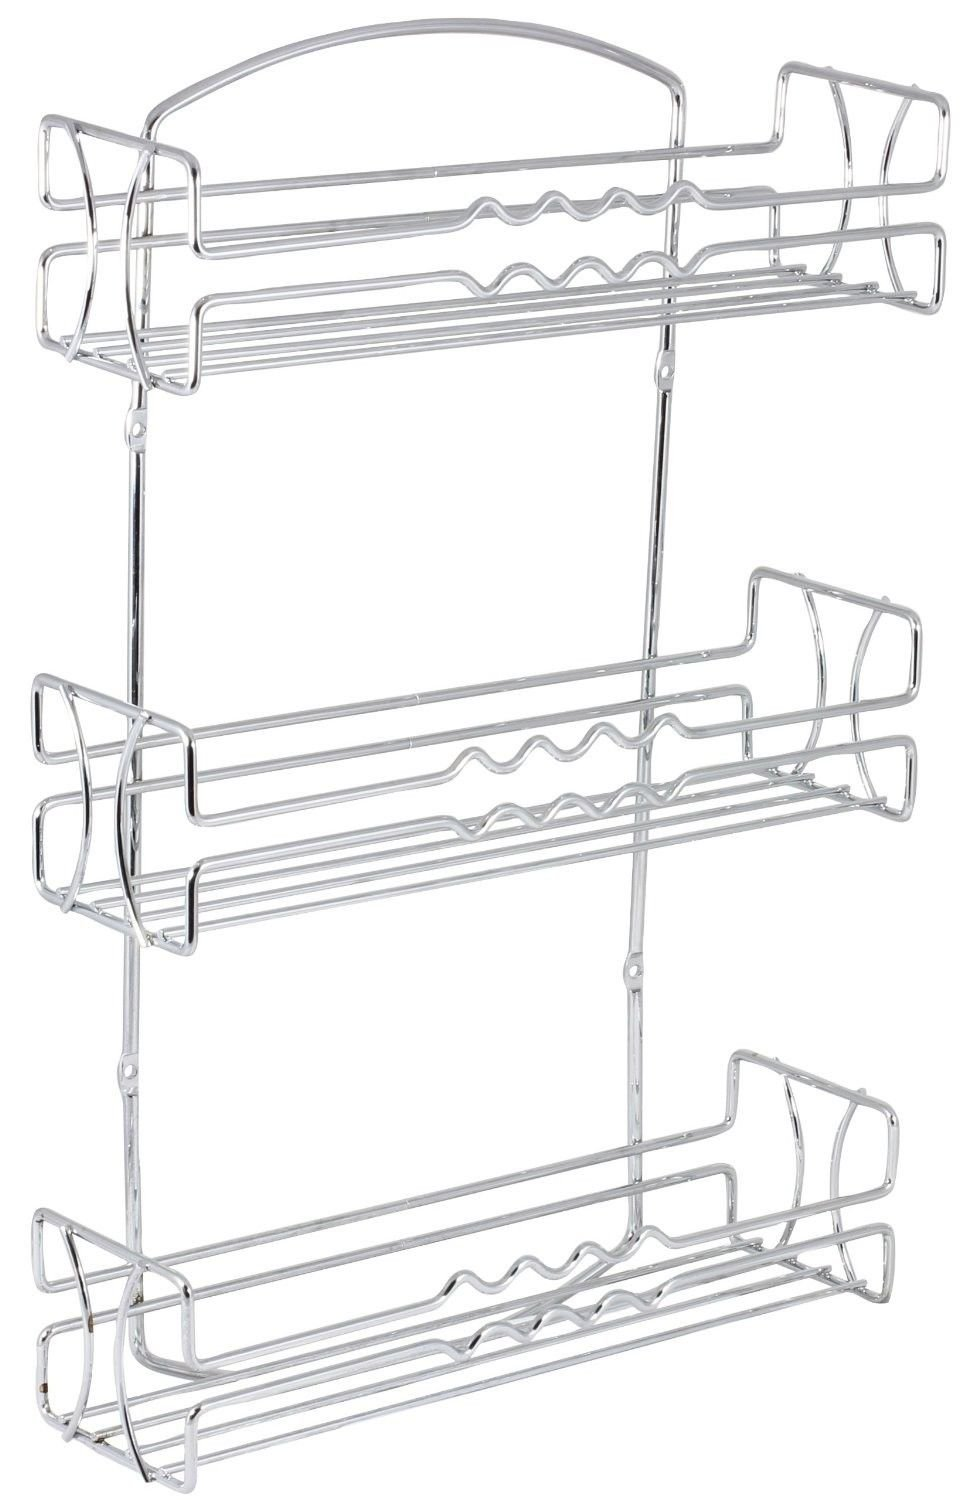 DecoBros 3 Tier Wall Mounted Spice Rack, Chrome